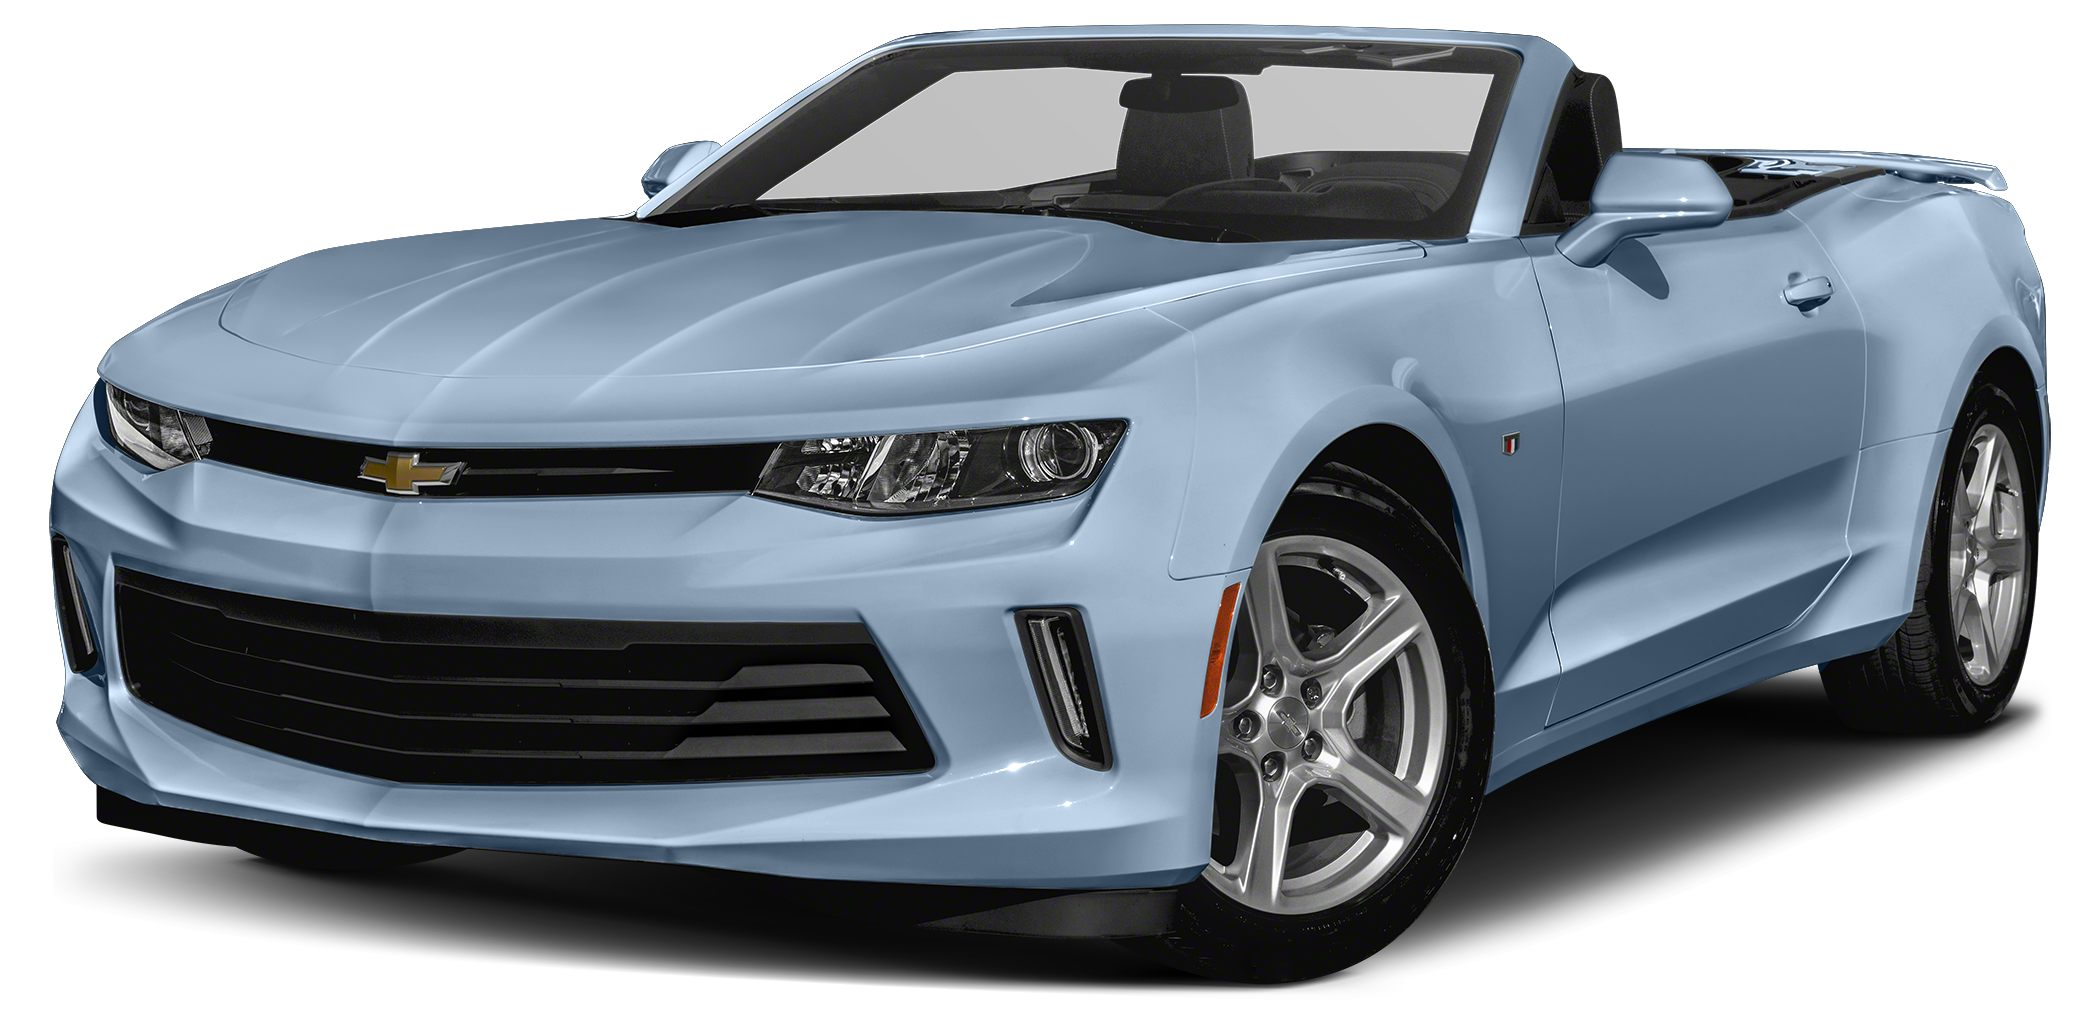 2017 Chevrolet Camaro LT w1LT The 2017 Camaro is a perfect formula of performance technology met